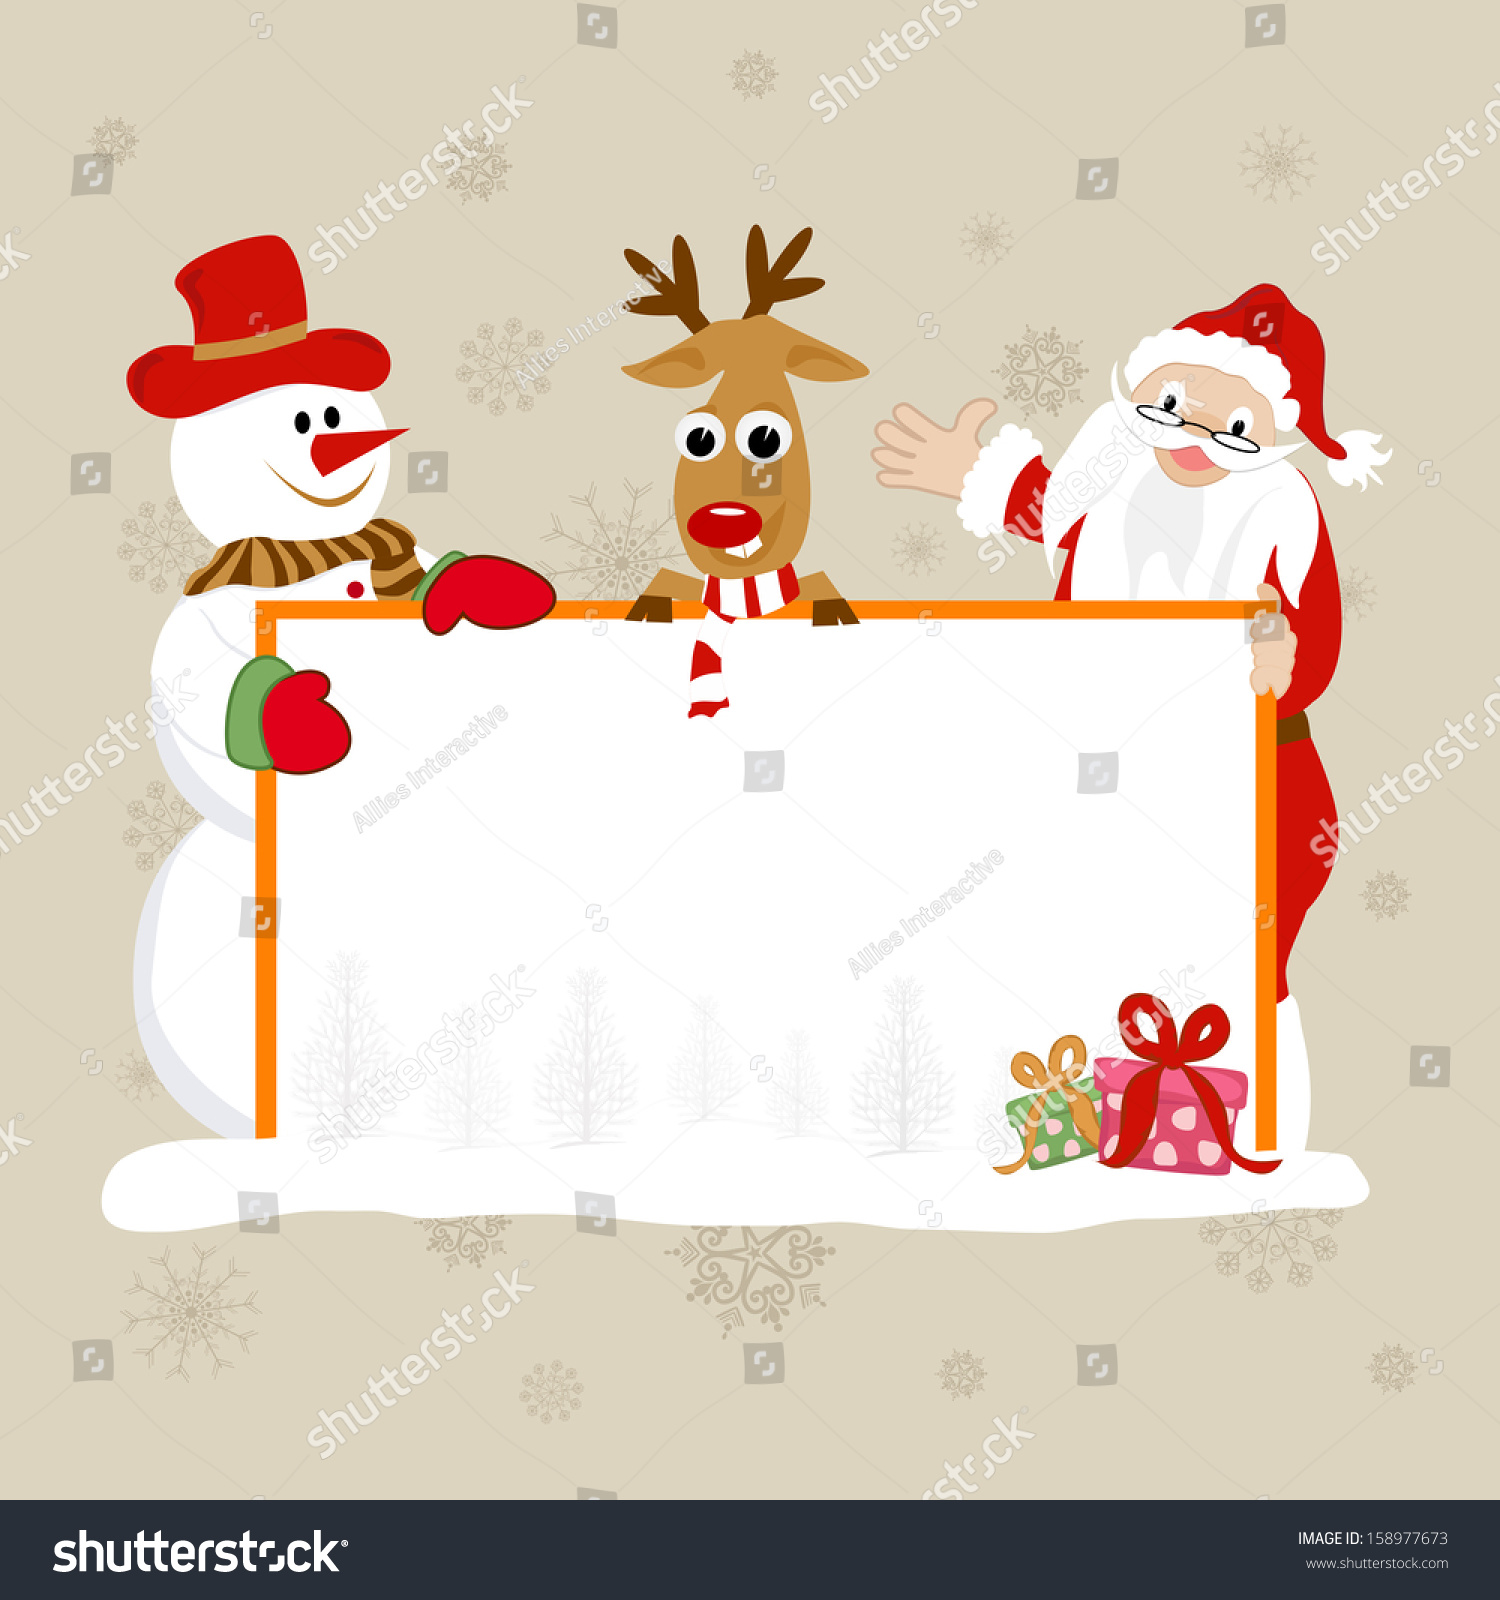 merry christmas celebration banner poster or flyer design save to a lightbox